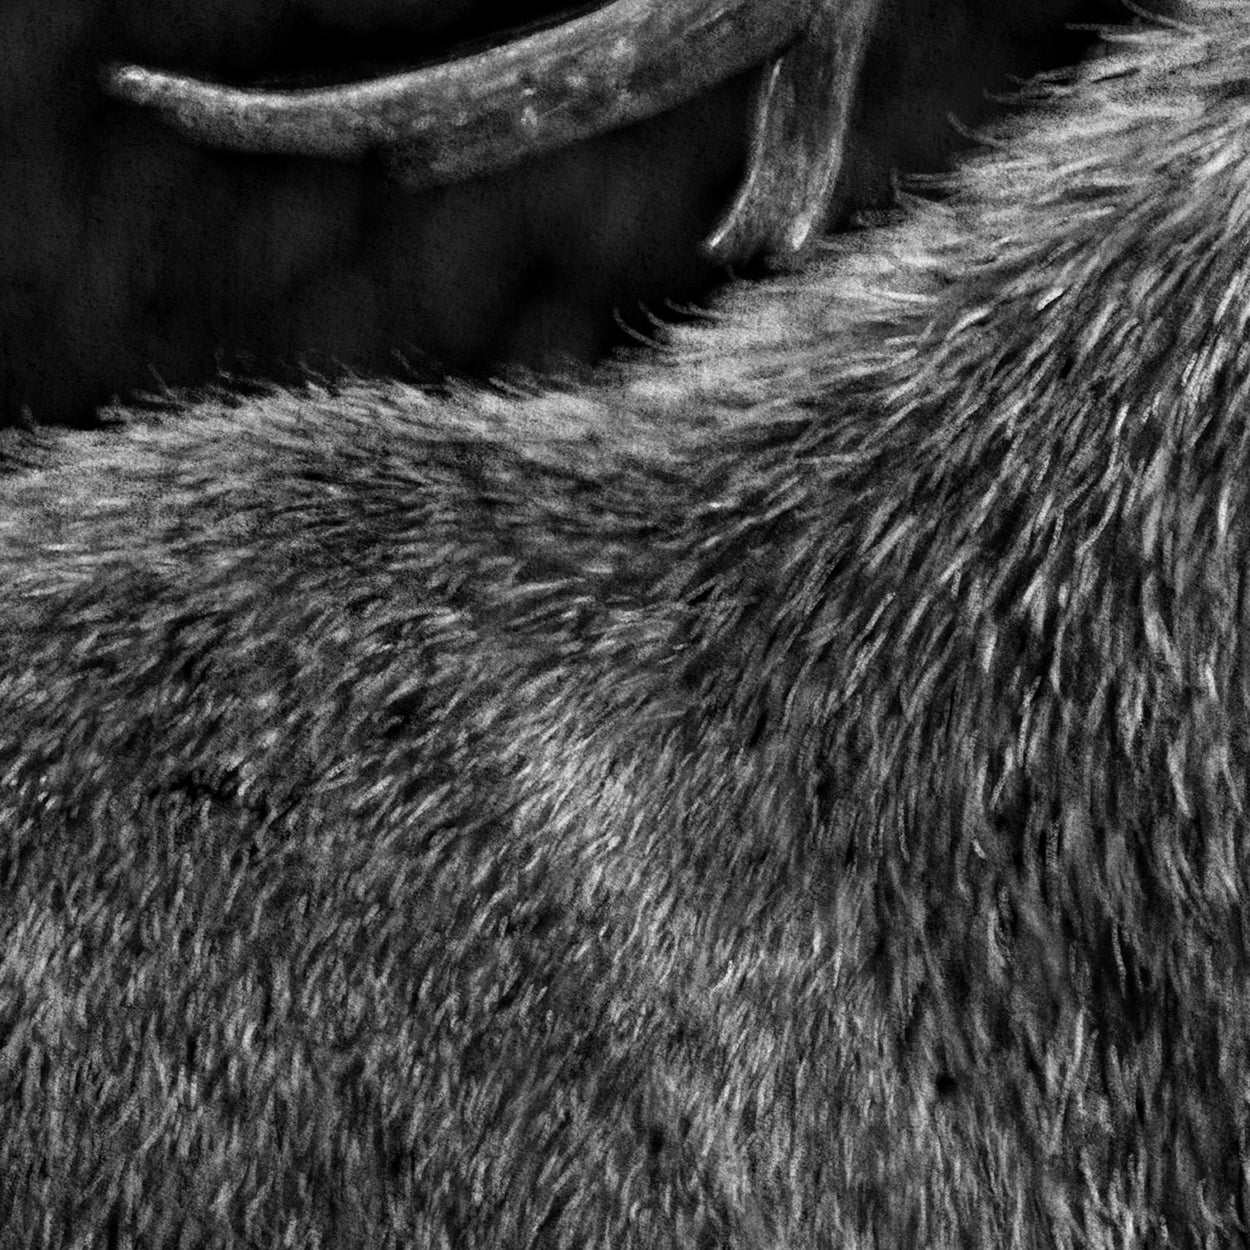 Red Deer Digital Drawing Close-up - The Thriving Wild